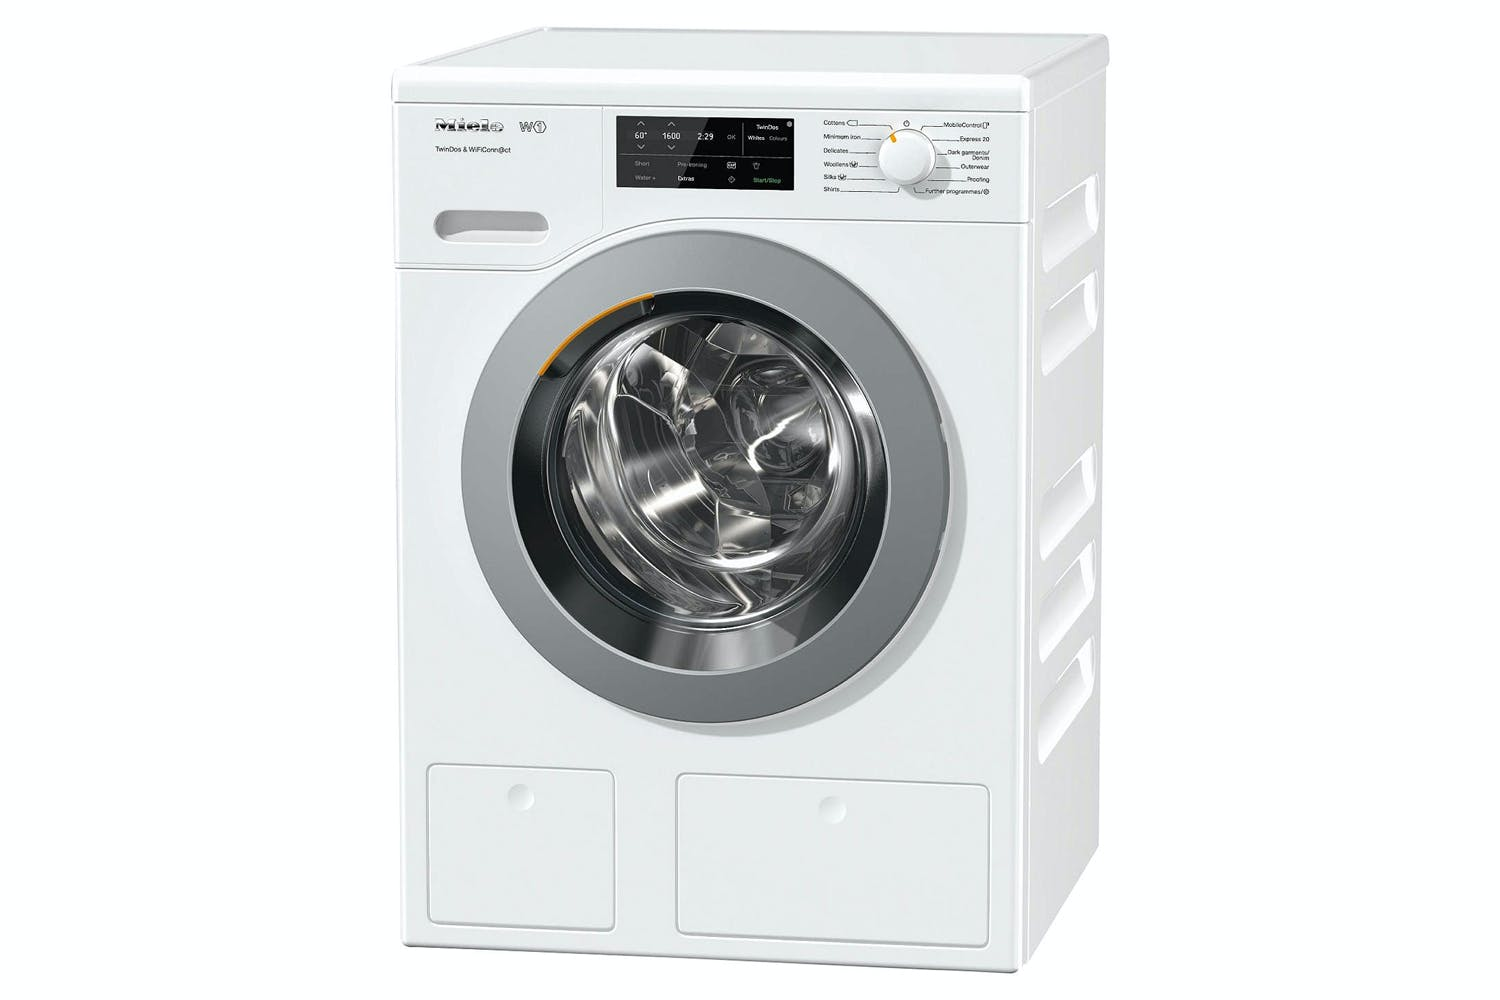 Miele Wce660 Tdos Wifi W1 Front Loading Washing Machine With Twindos Printed Circuit Board Repairs For Tumble Dryers Aeg Electrolux And Capdosing Perfect